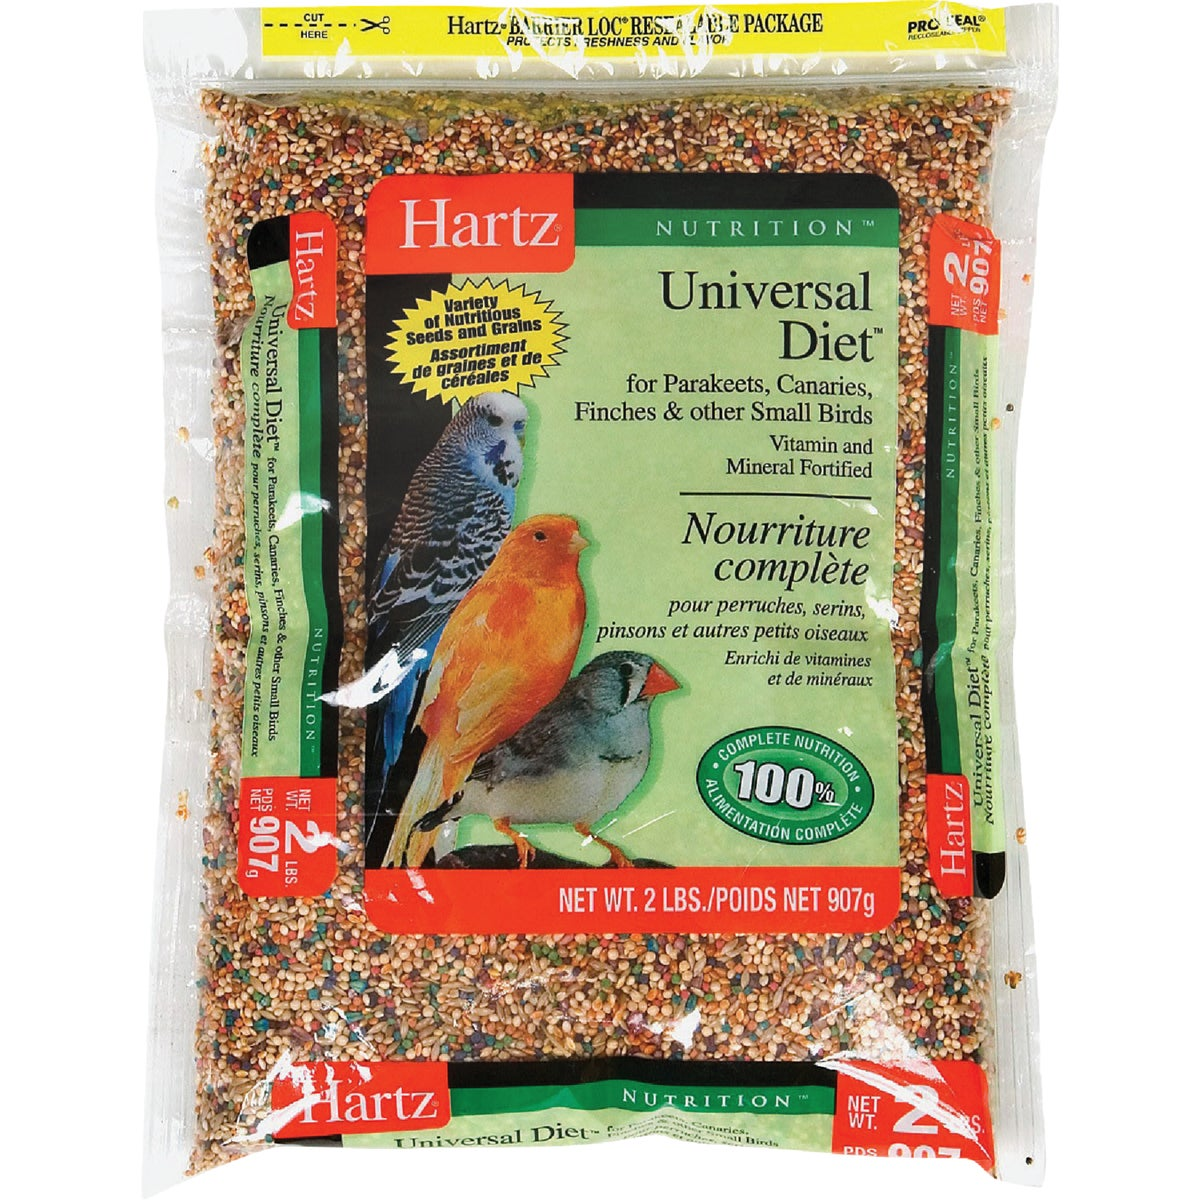 2LB SMALL BIRD FOOD - 3270097754 by Hartz Mountain Corp